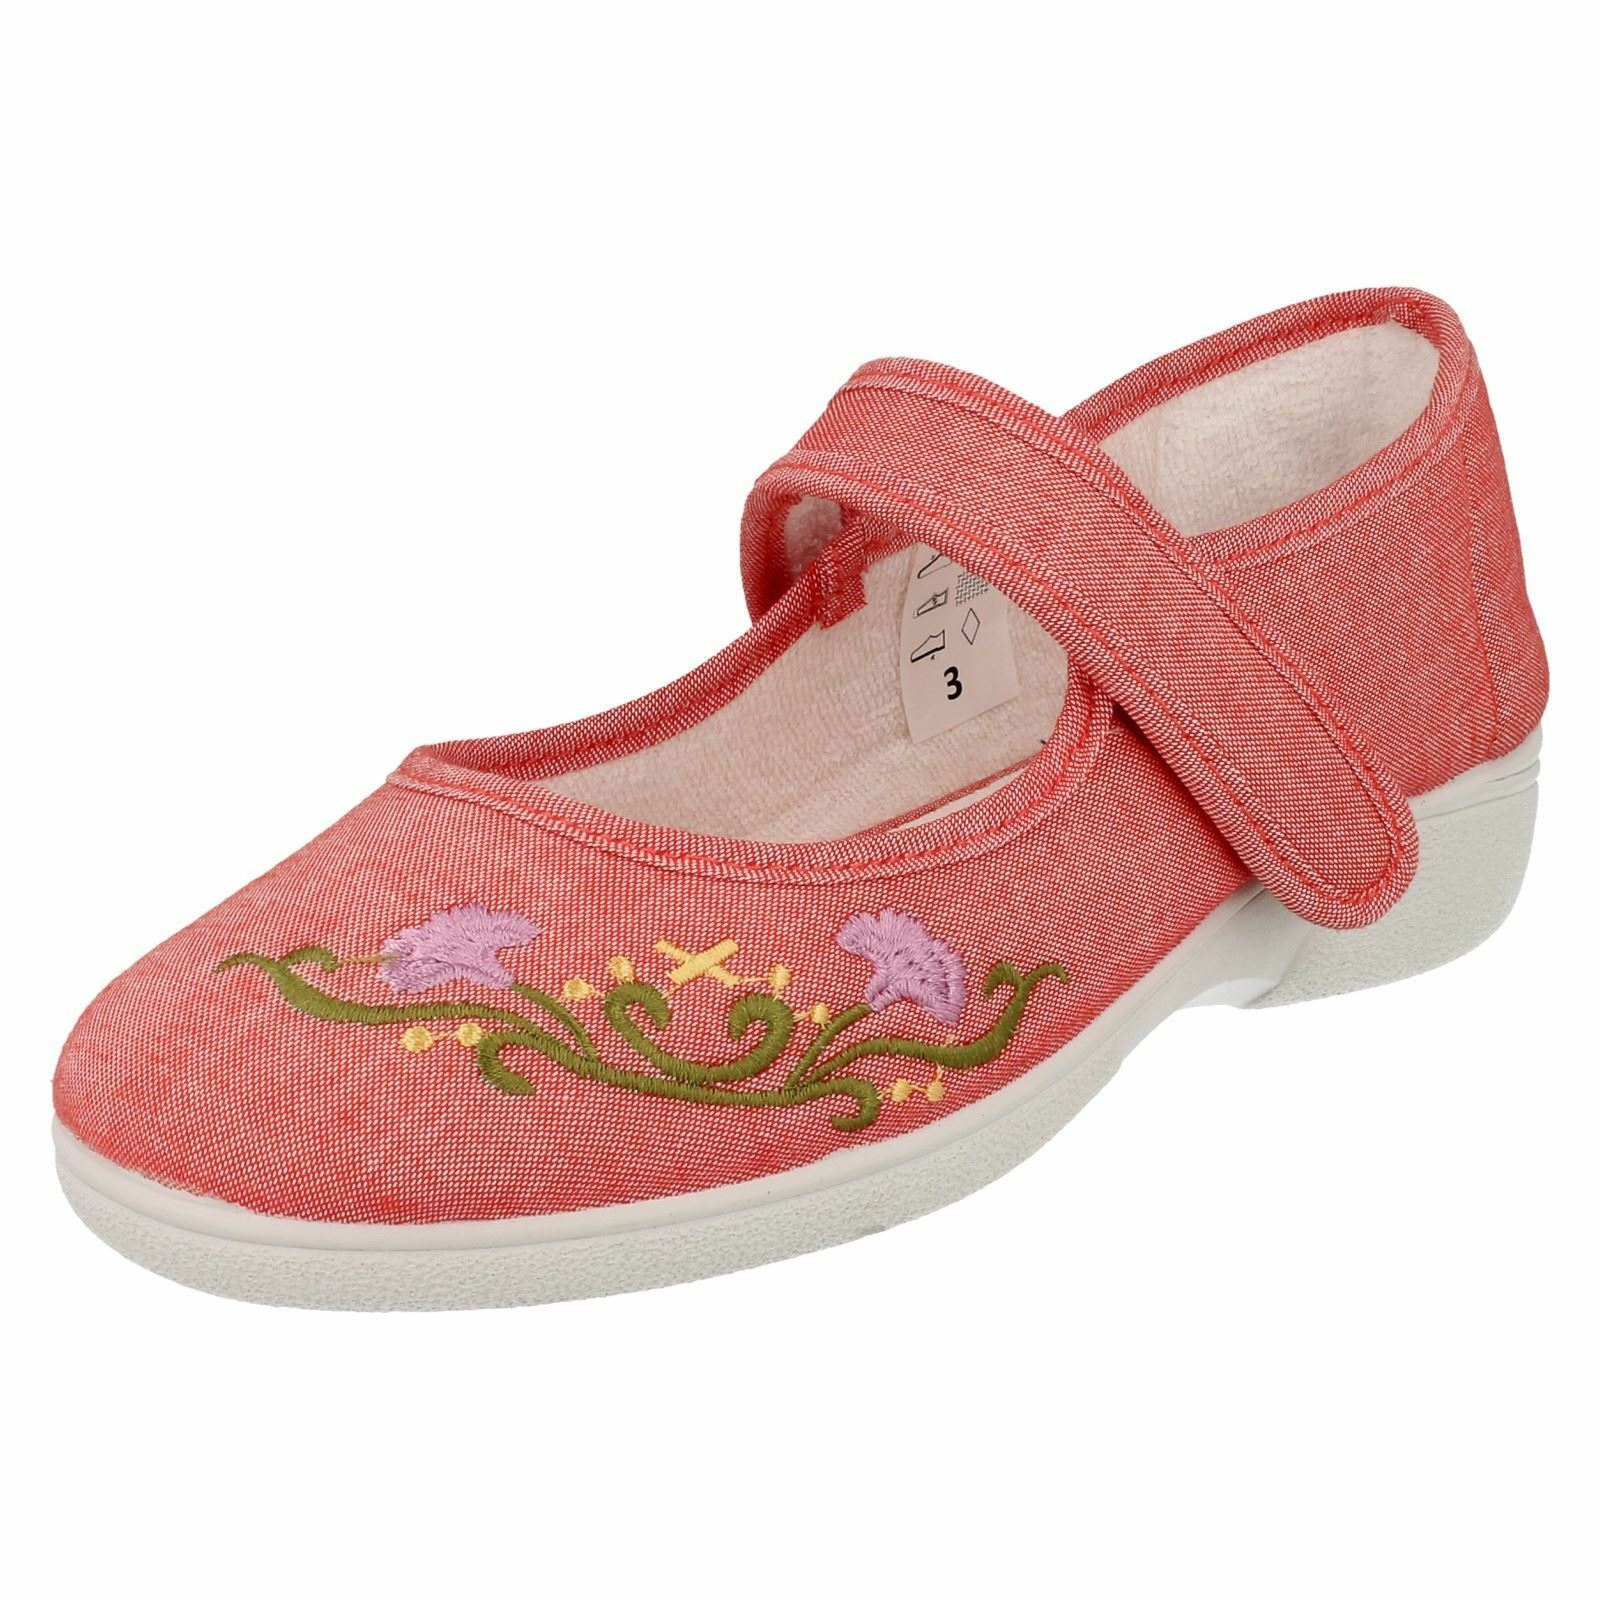 4a7cf79d9 Ladies Easy B Casual Canvas - Sofia shoes nofyri1281-Women's Comfort ...